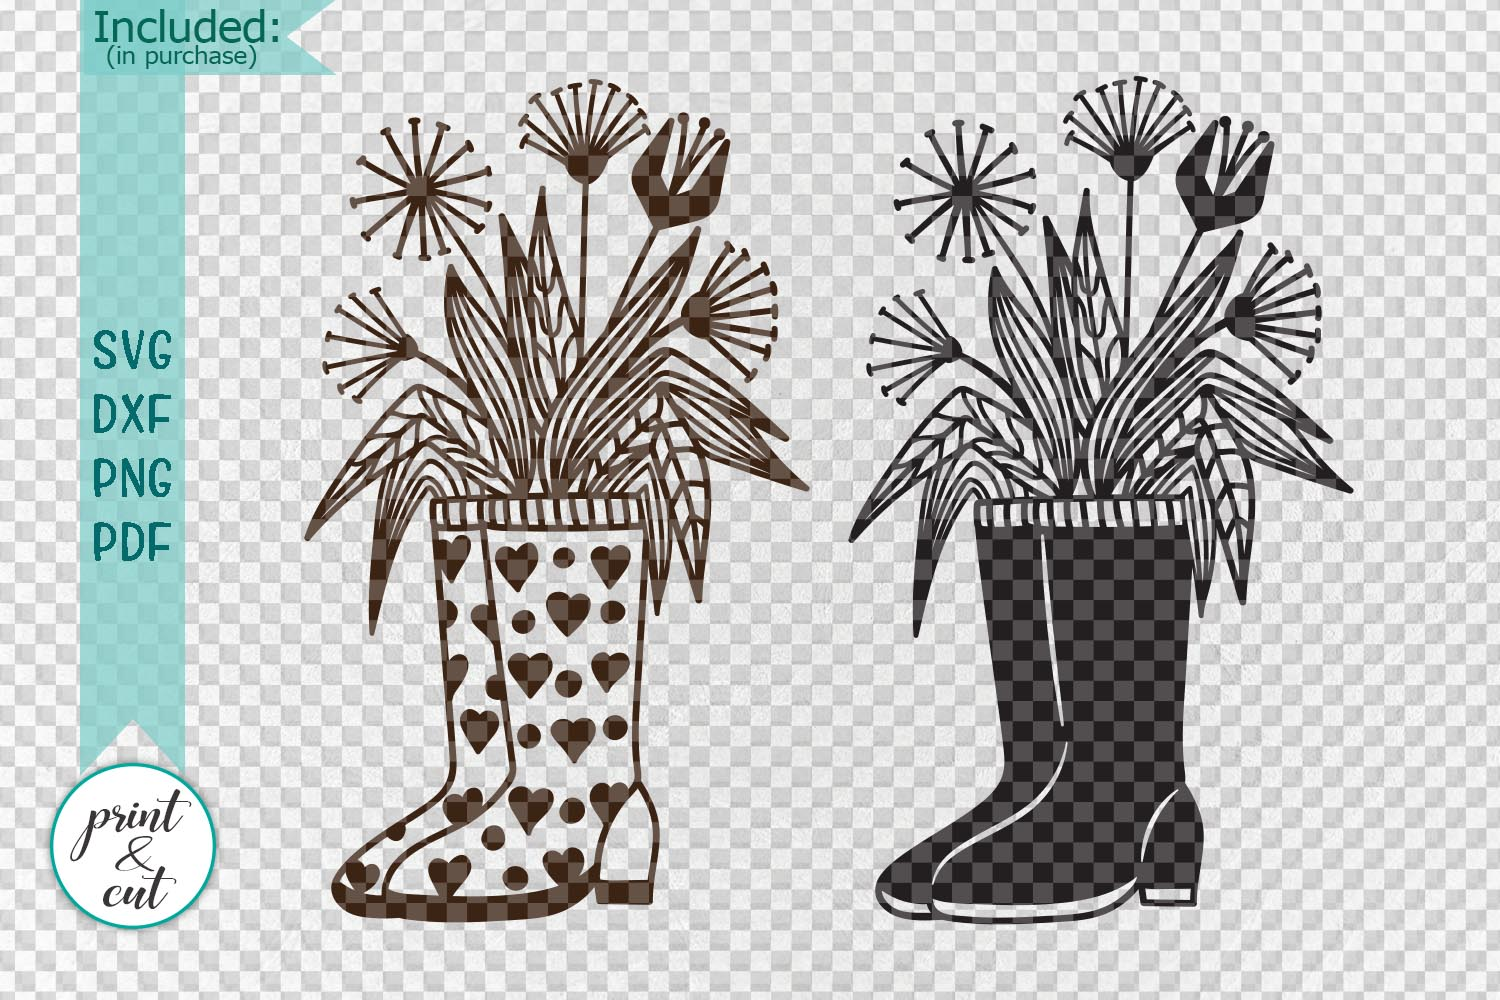 Wellies rain boots with flowers svg dxf cutting templates example image 2